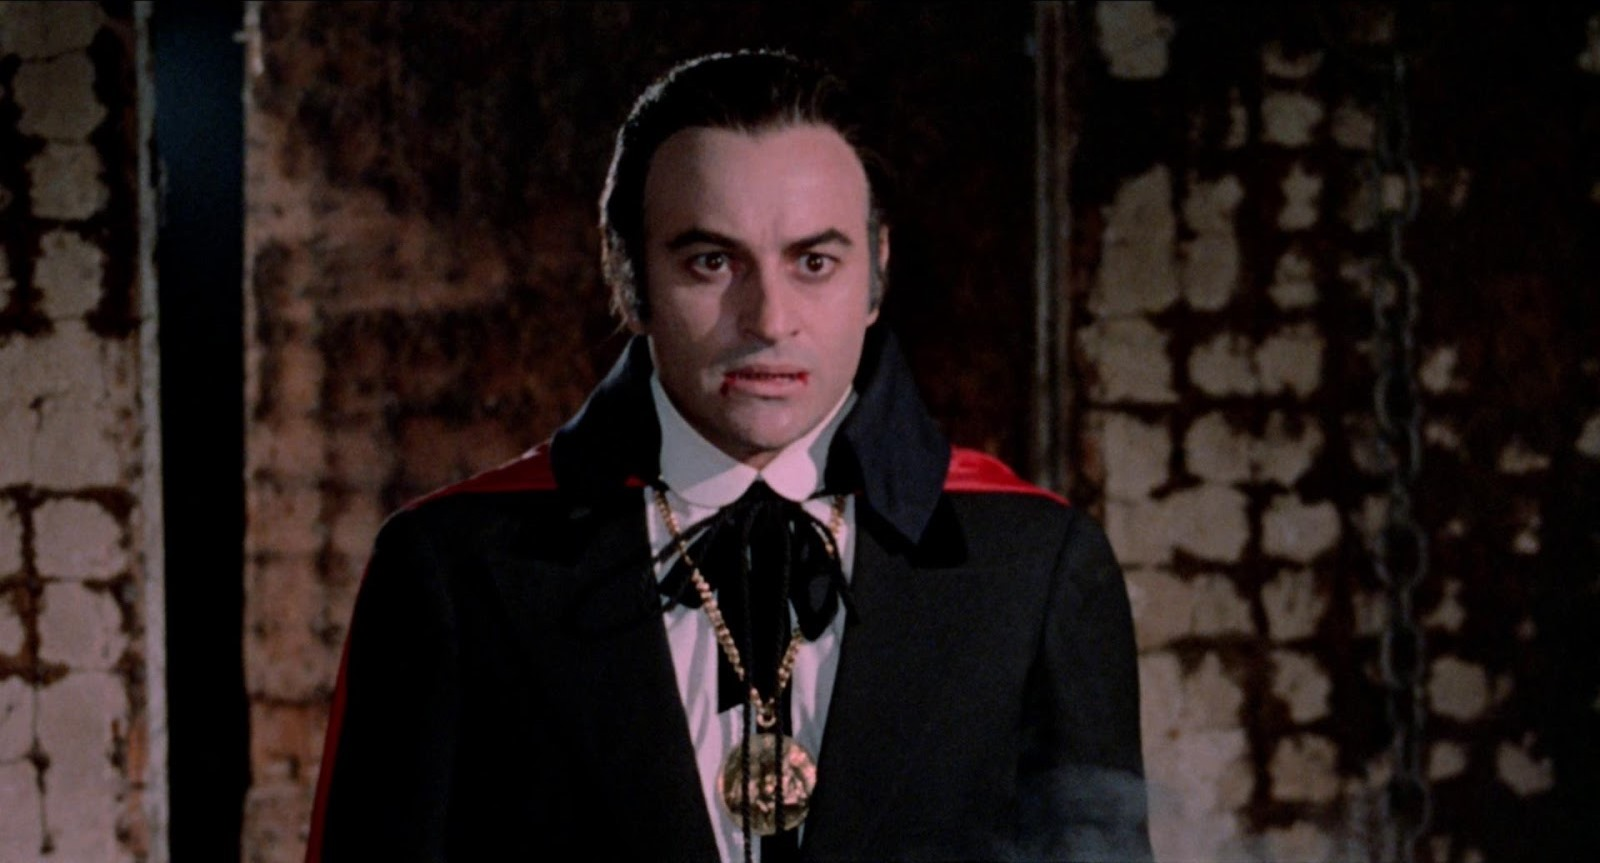 Paul Naschy as Count Dracula in Count Dracula's Great Love (1972)